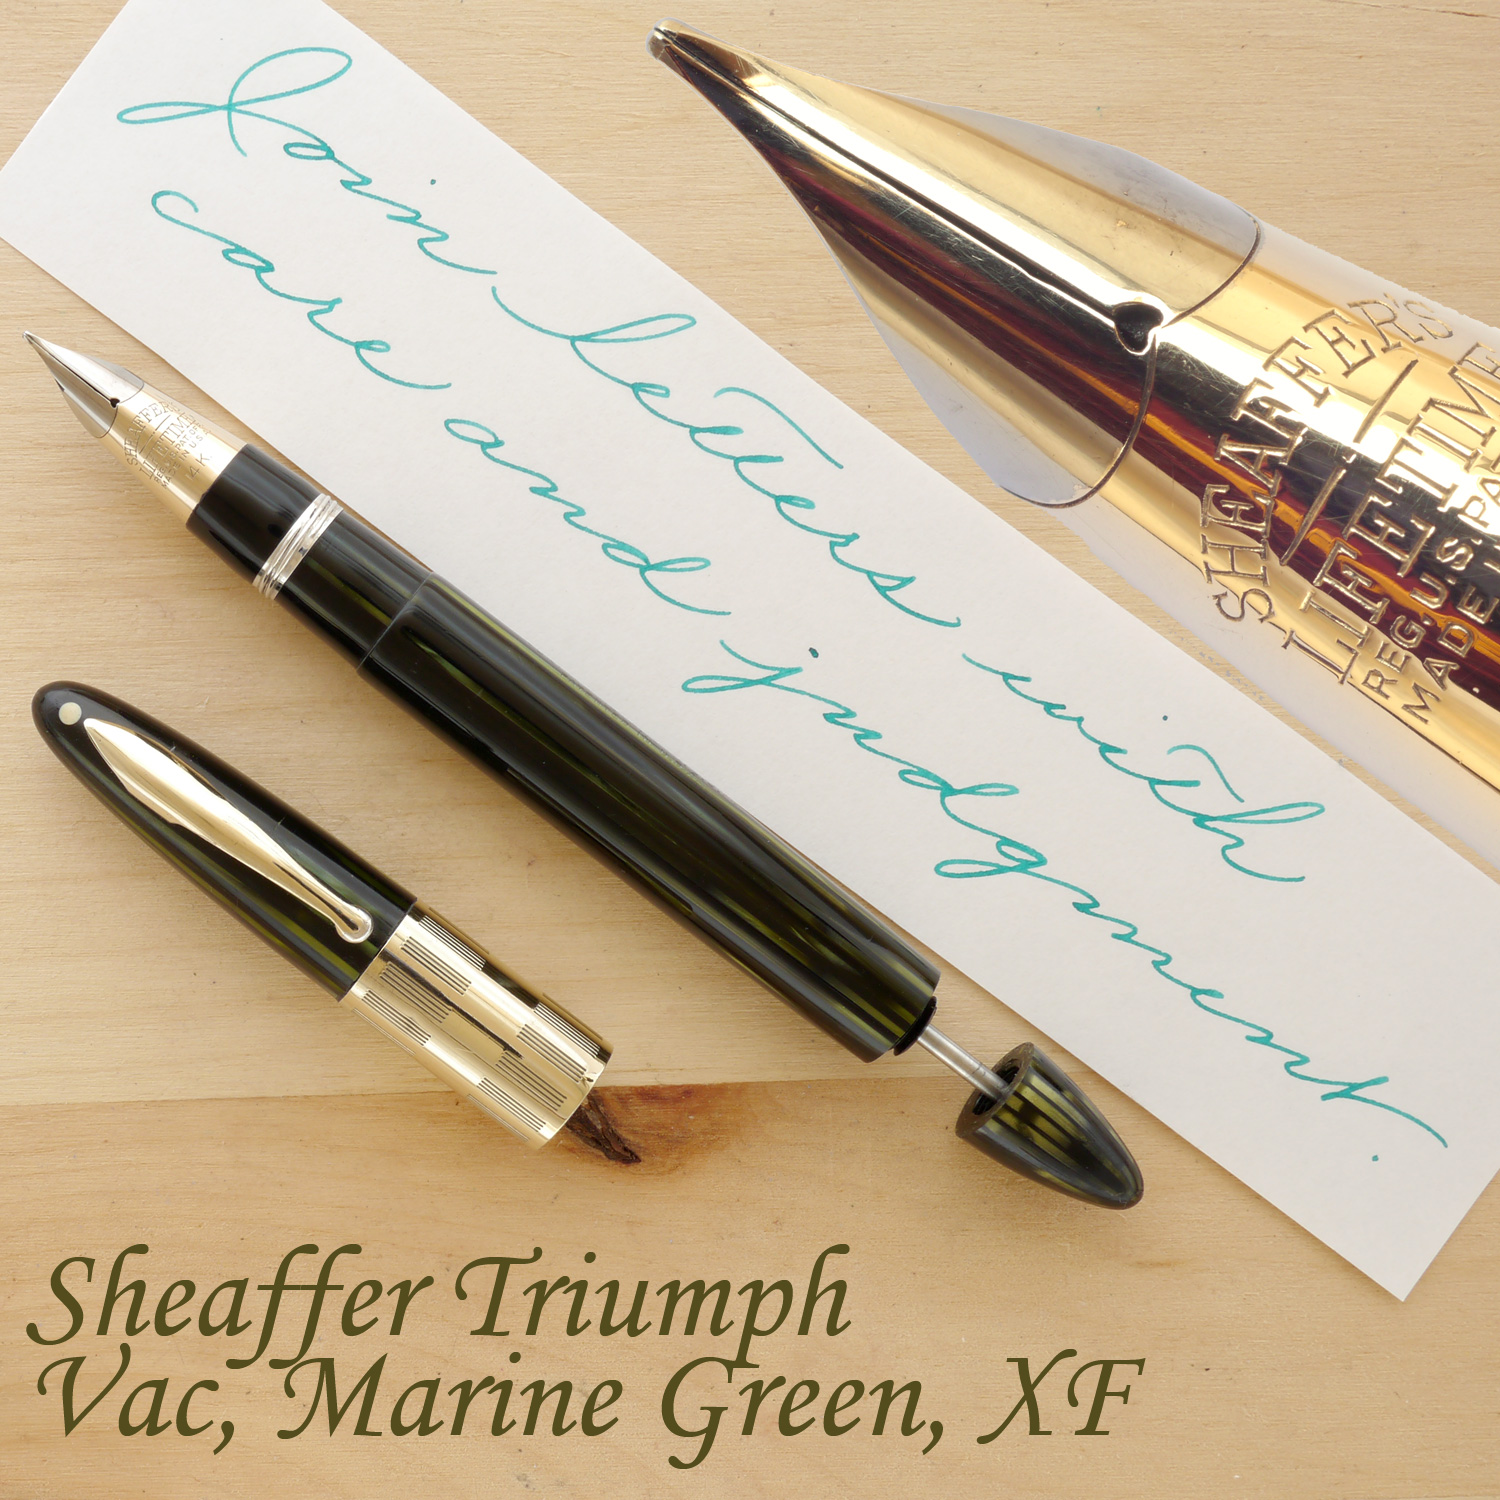 Sheaffer Triumph Vac Fountain Pen, Marine Green, XF, uncapped, with the plunger partially extended